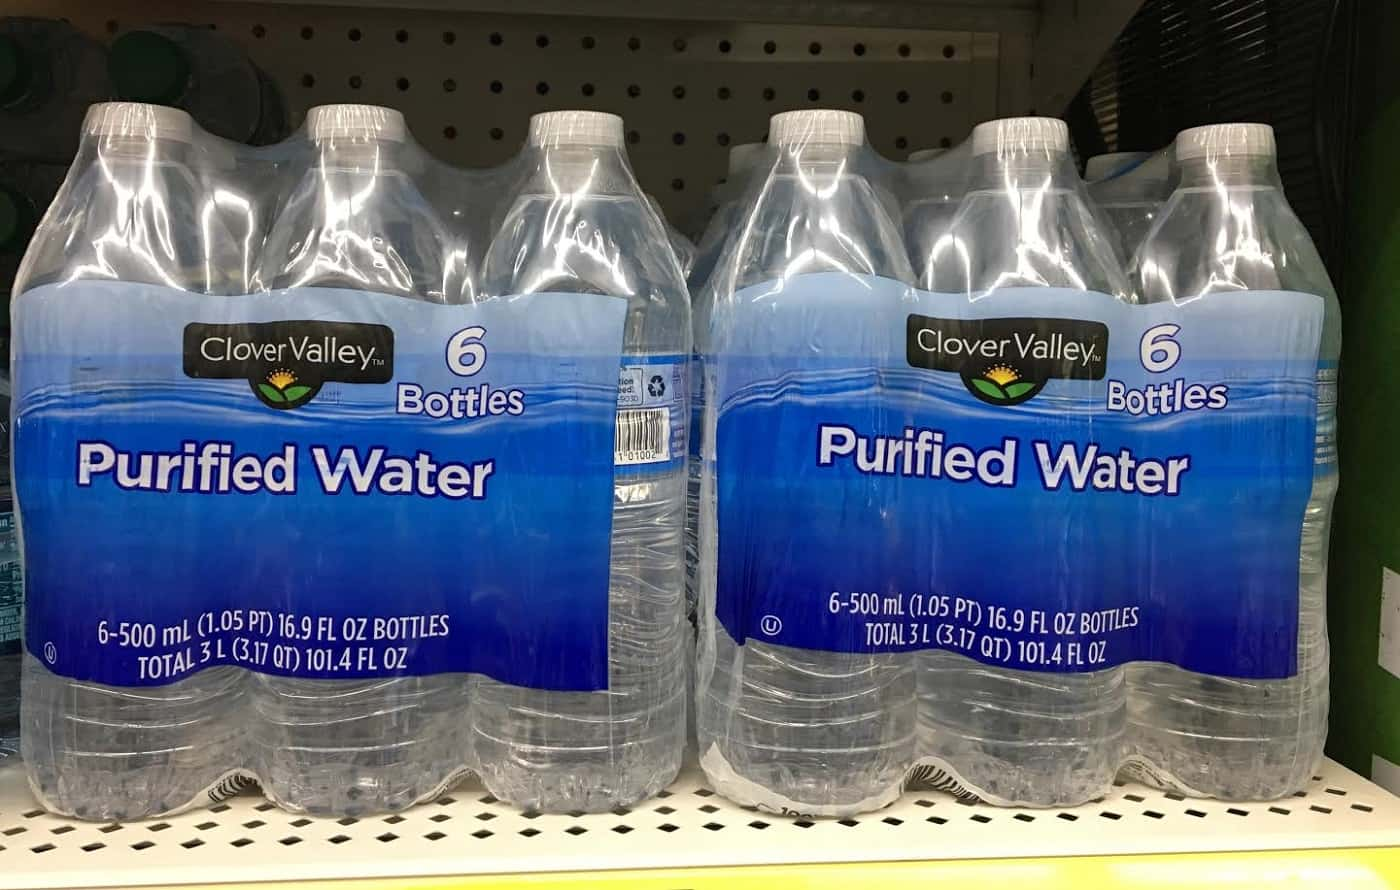 Purified water in packages - Real food vs. fake food